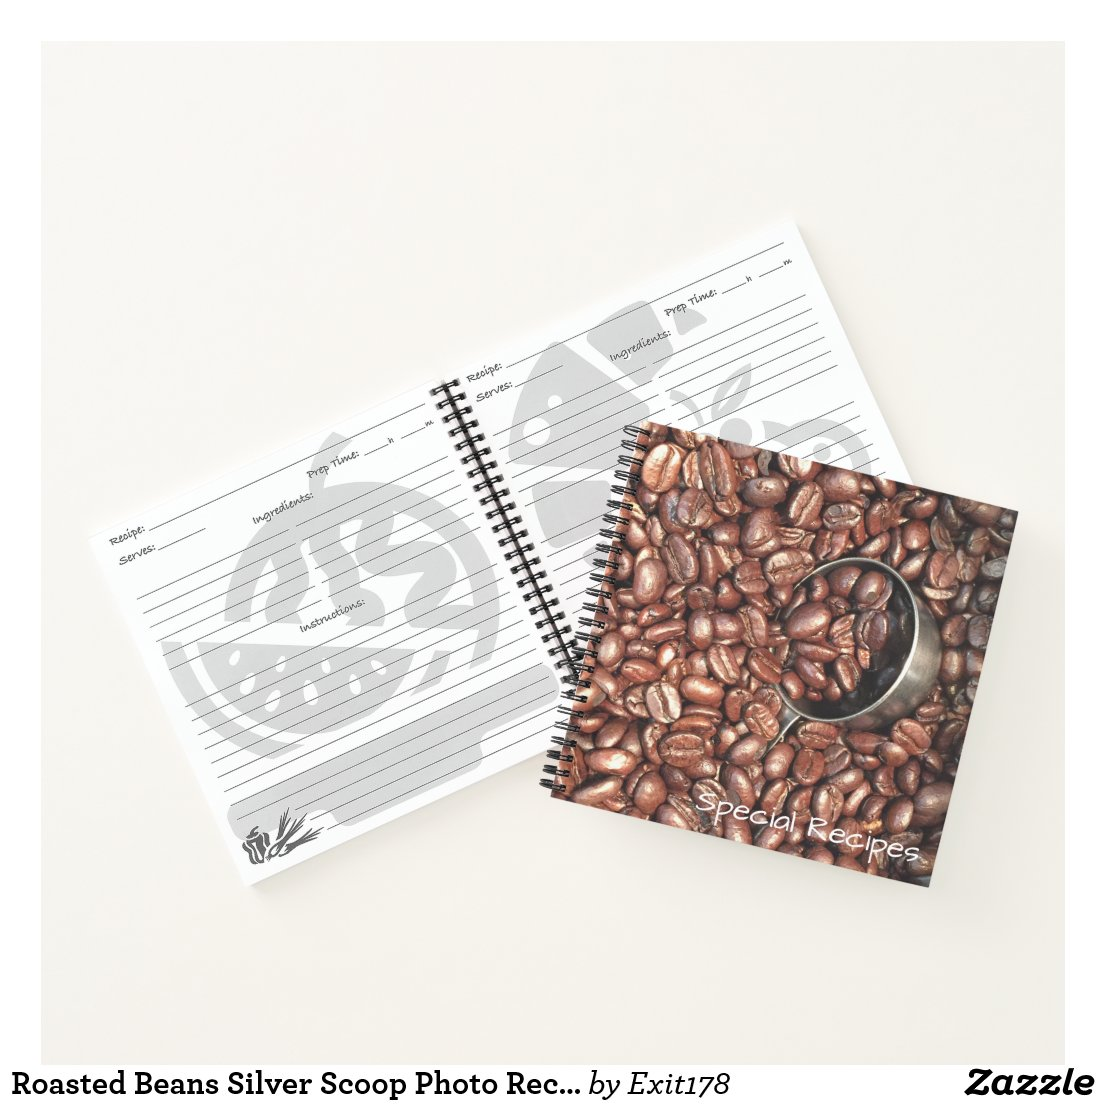 Roasted Coffee Beans With Silver Scoop Photograph Notebook